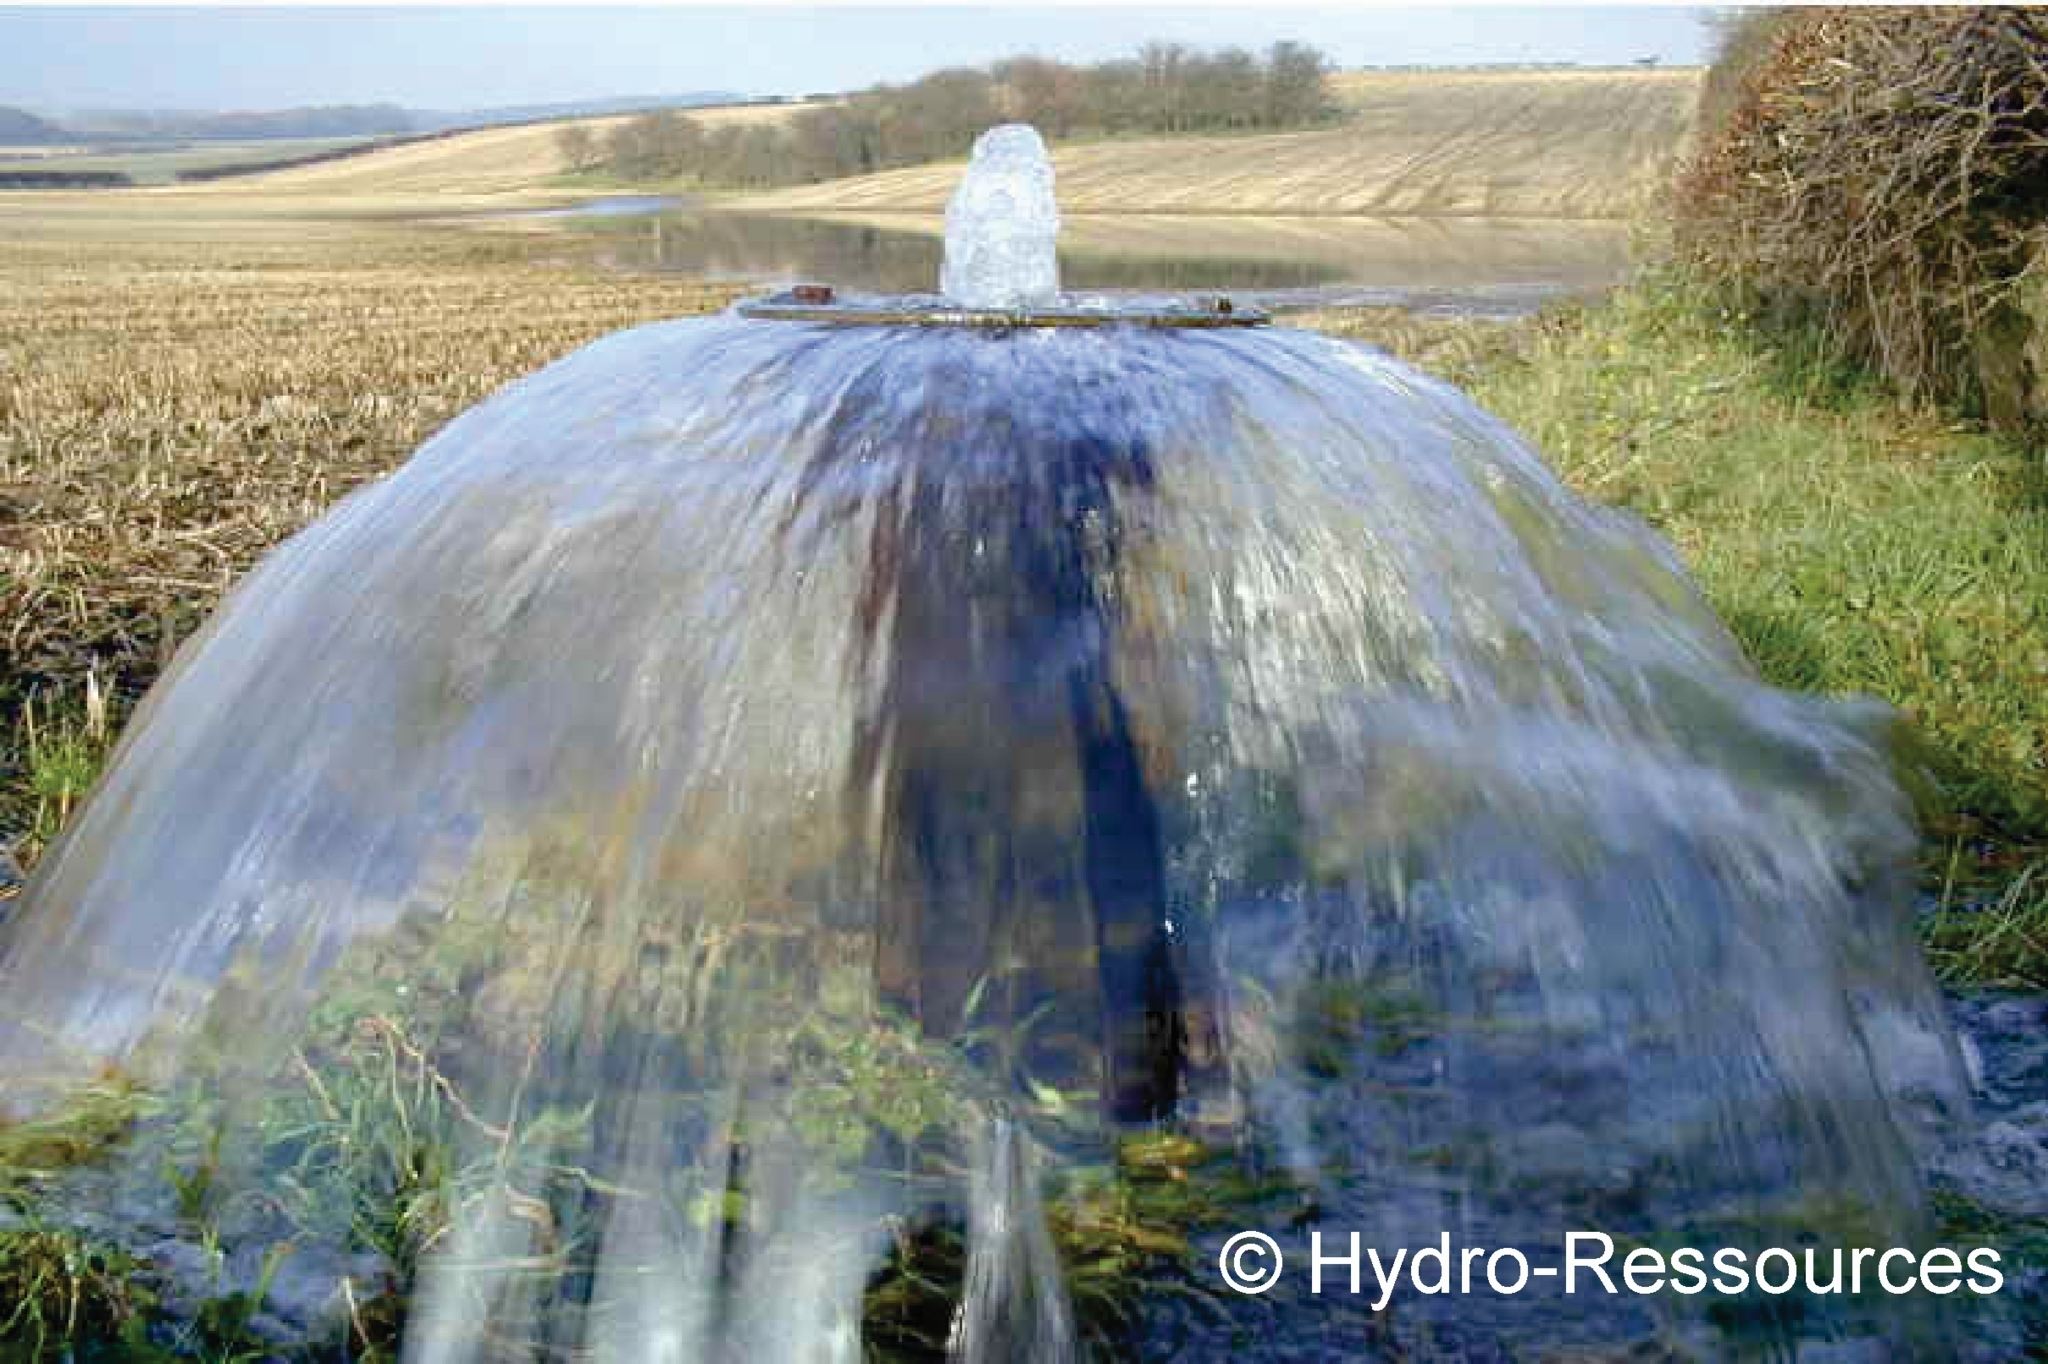 Images Hydro-Ressources